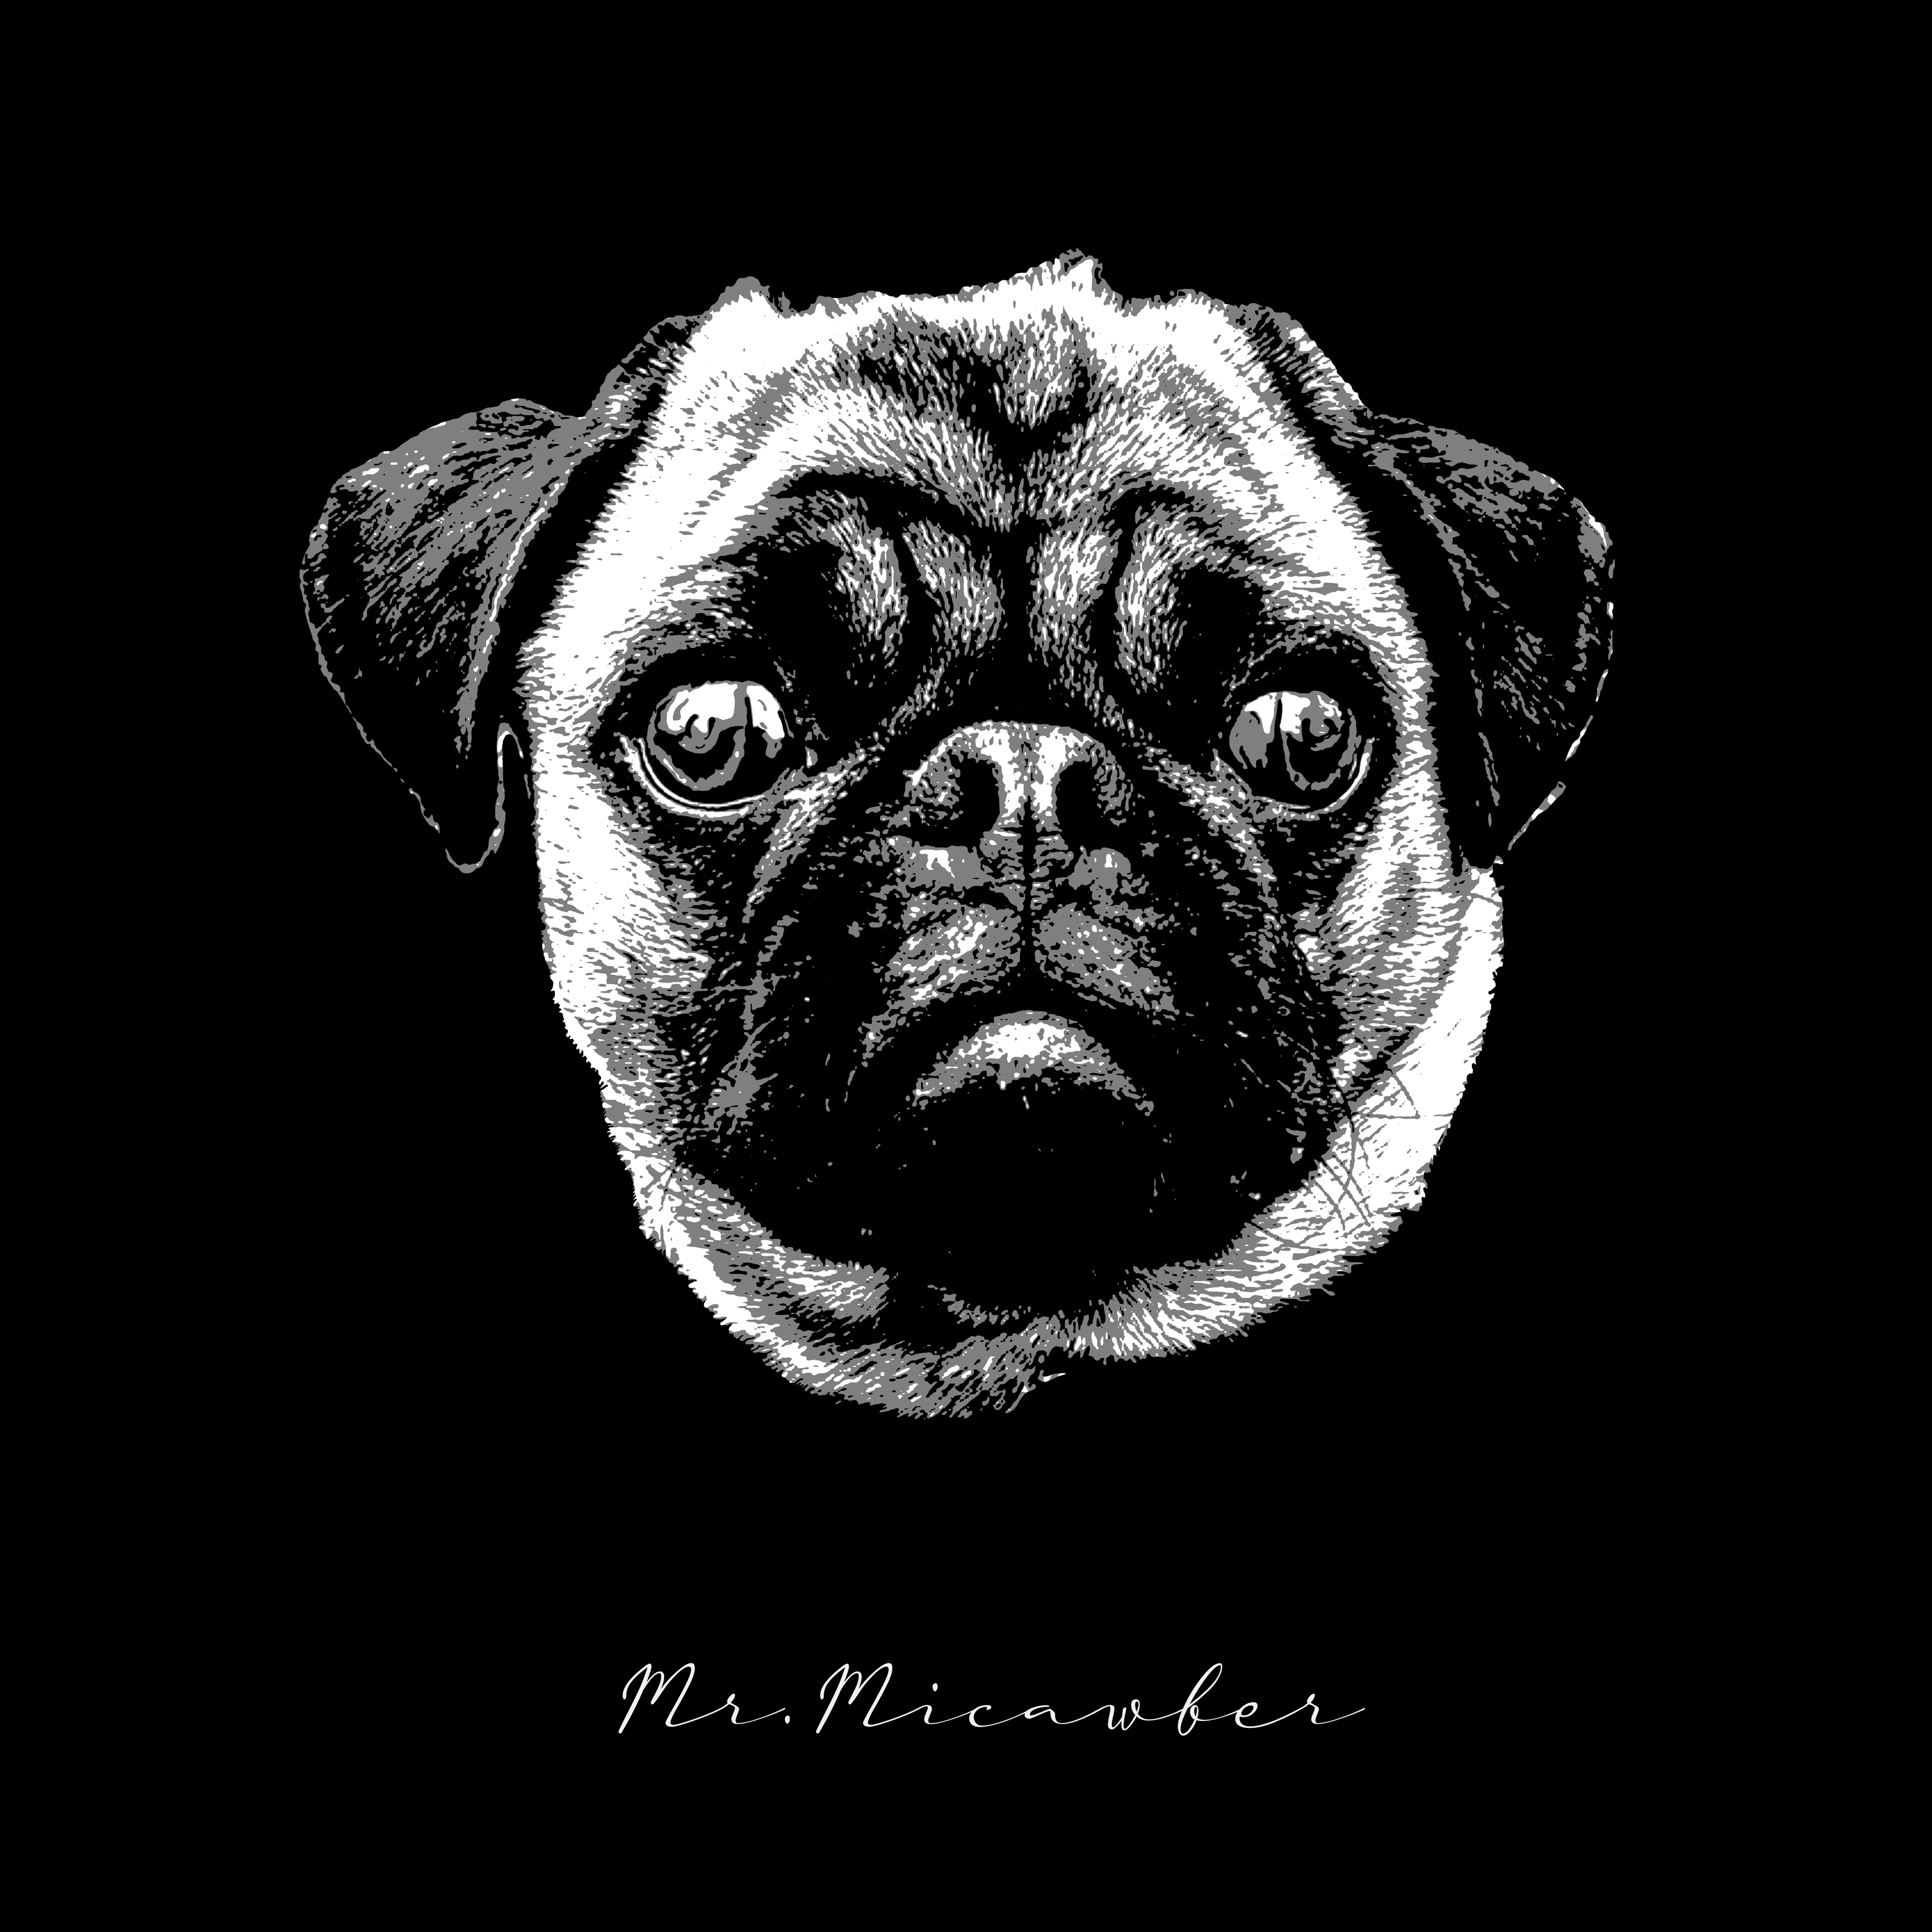 Pug head art with Signature Portrait effect added, Mr. Micawber Marbella